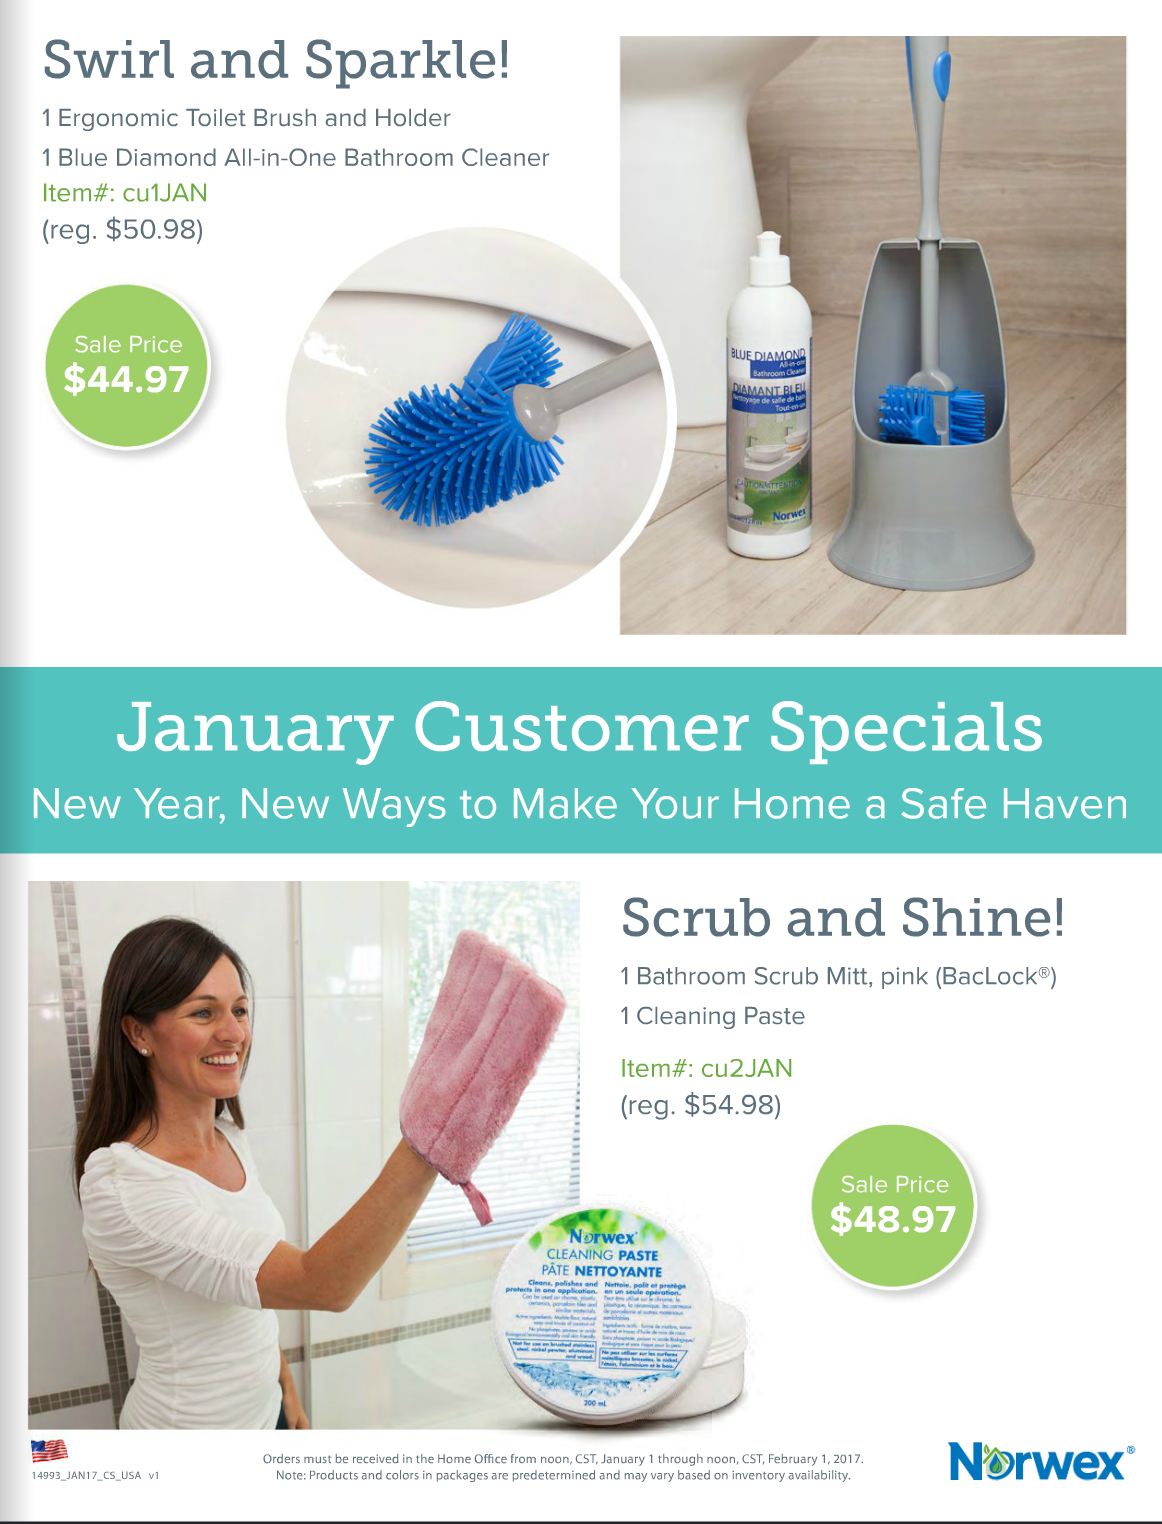 January Norwex Hostess and Customer Specials